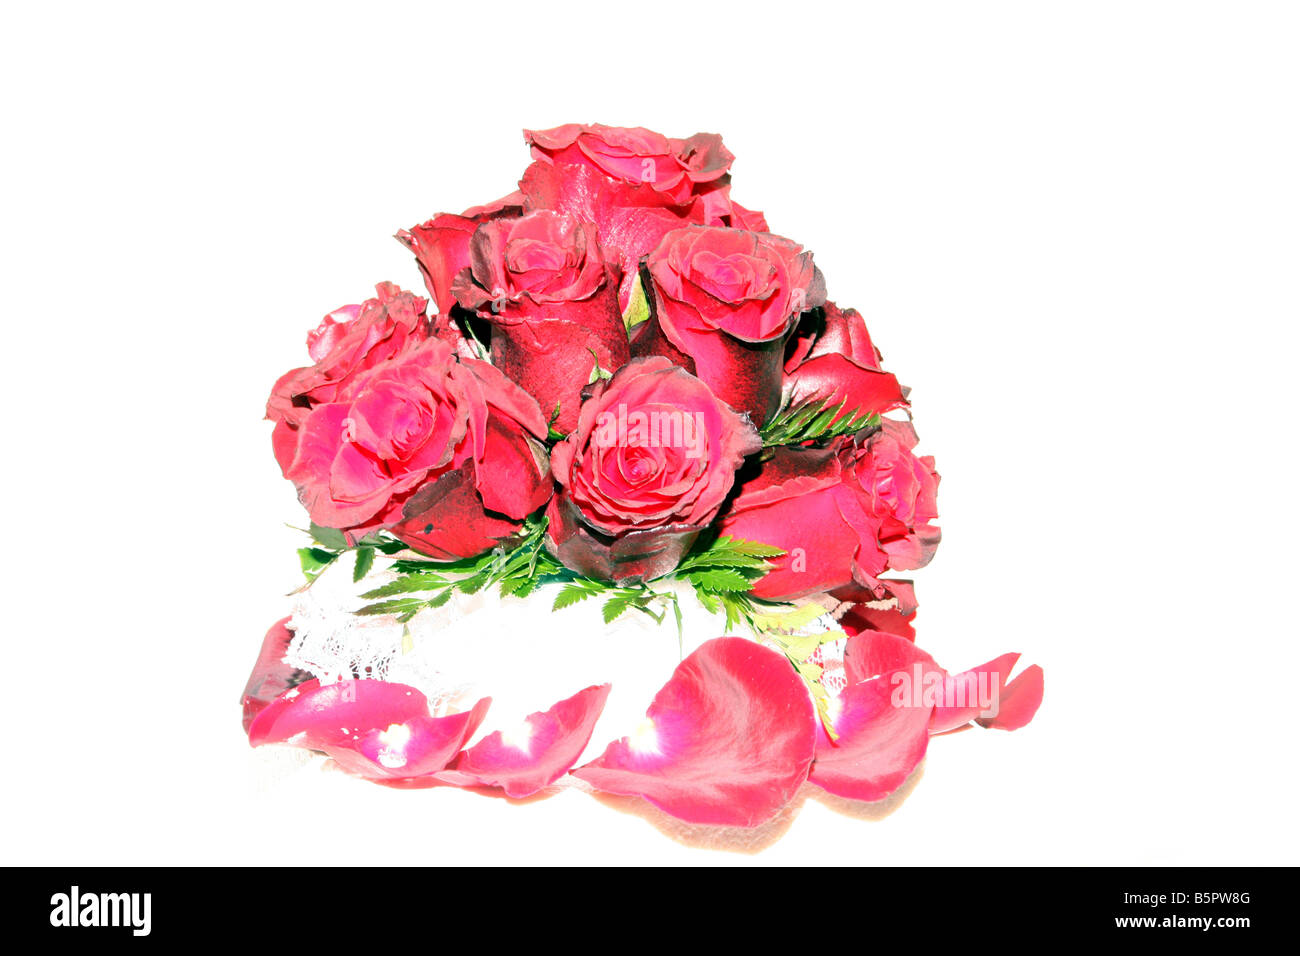 A fancy wedding cake with red roses on top displayed for a wedding reception - Stock Image